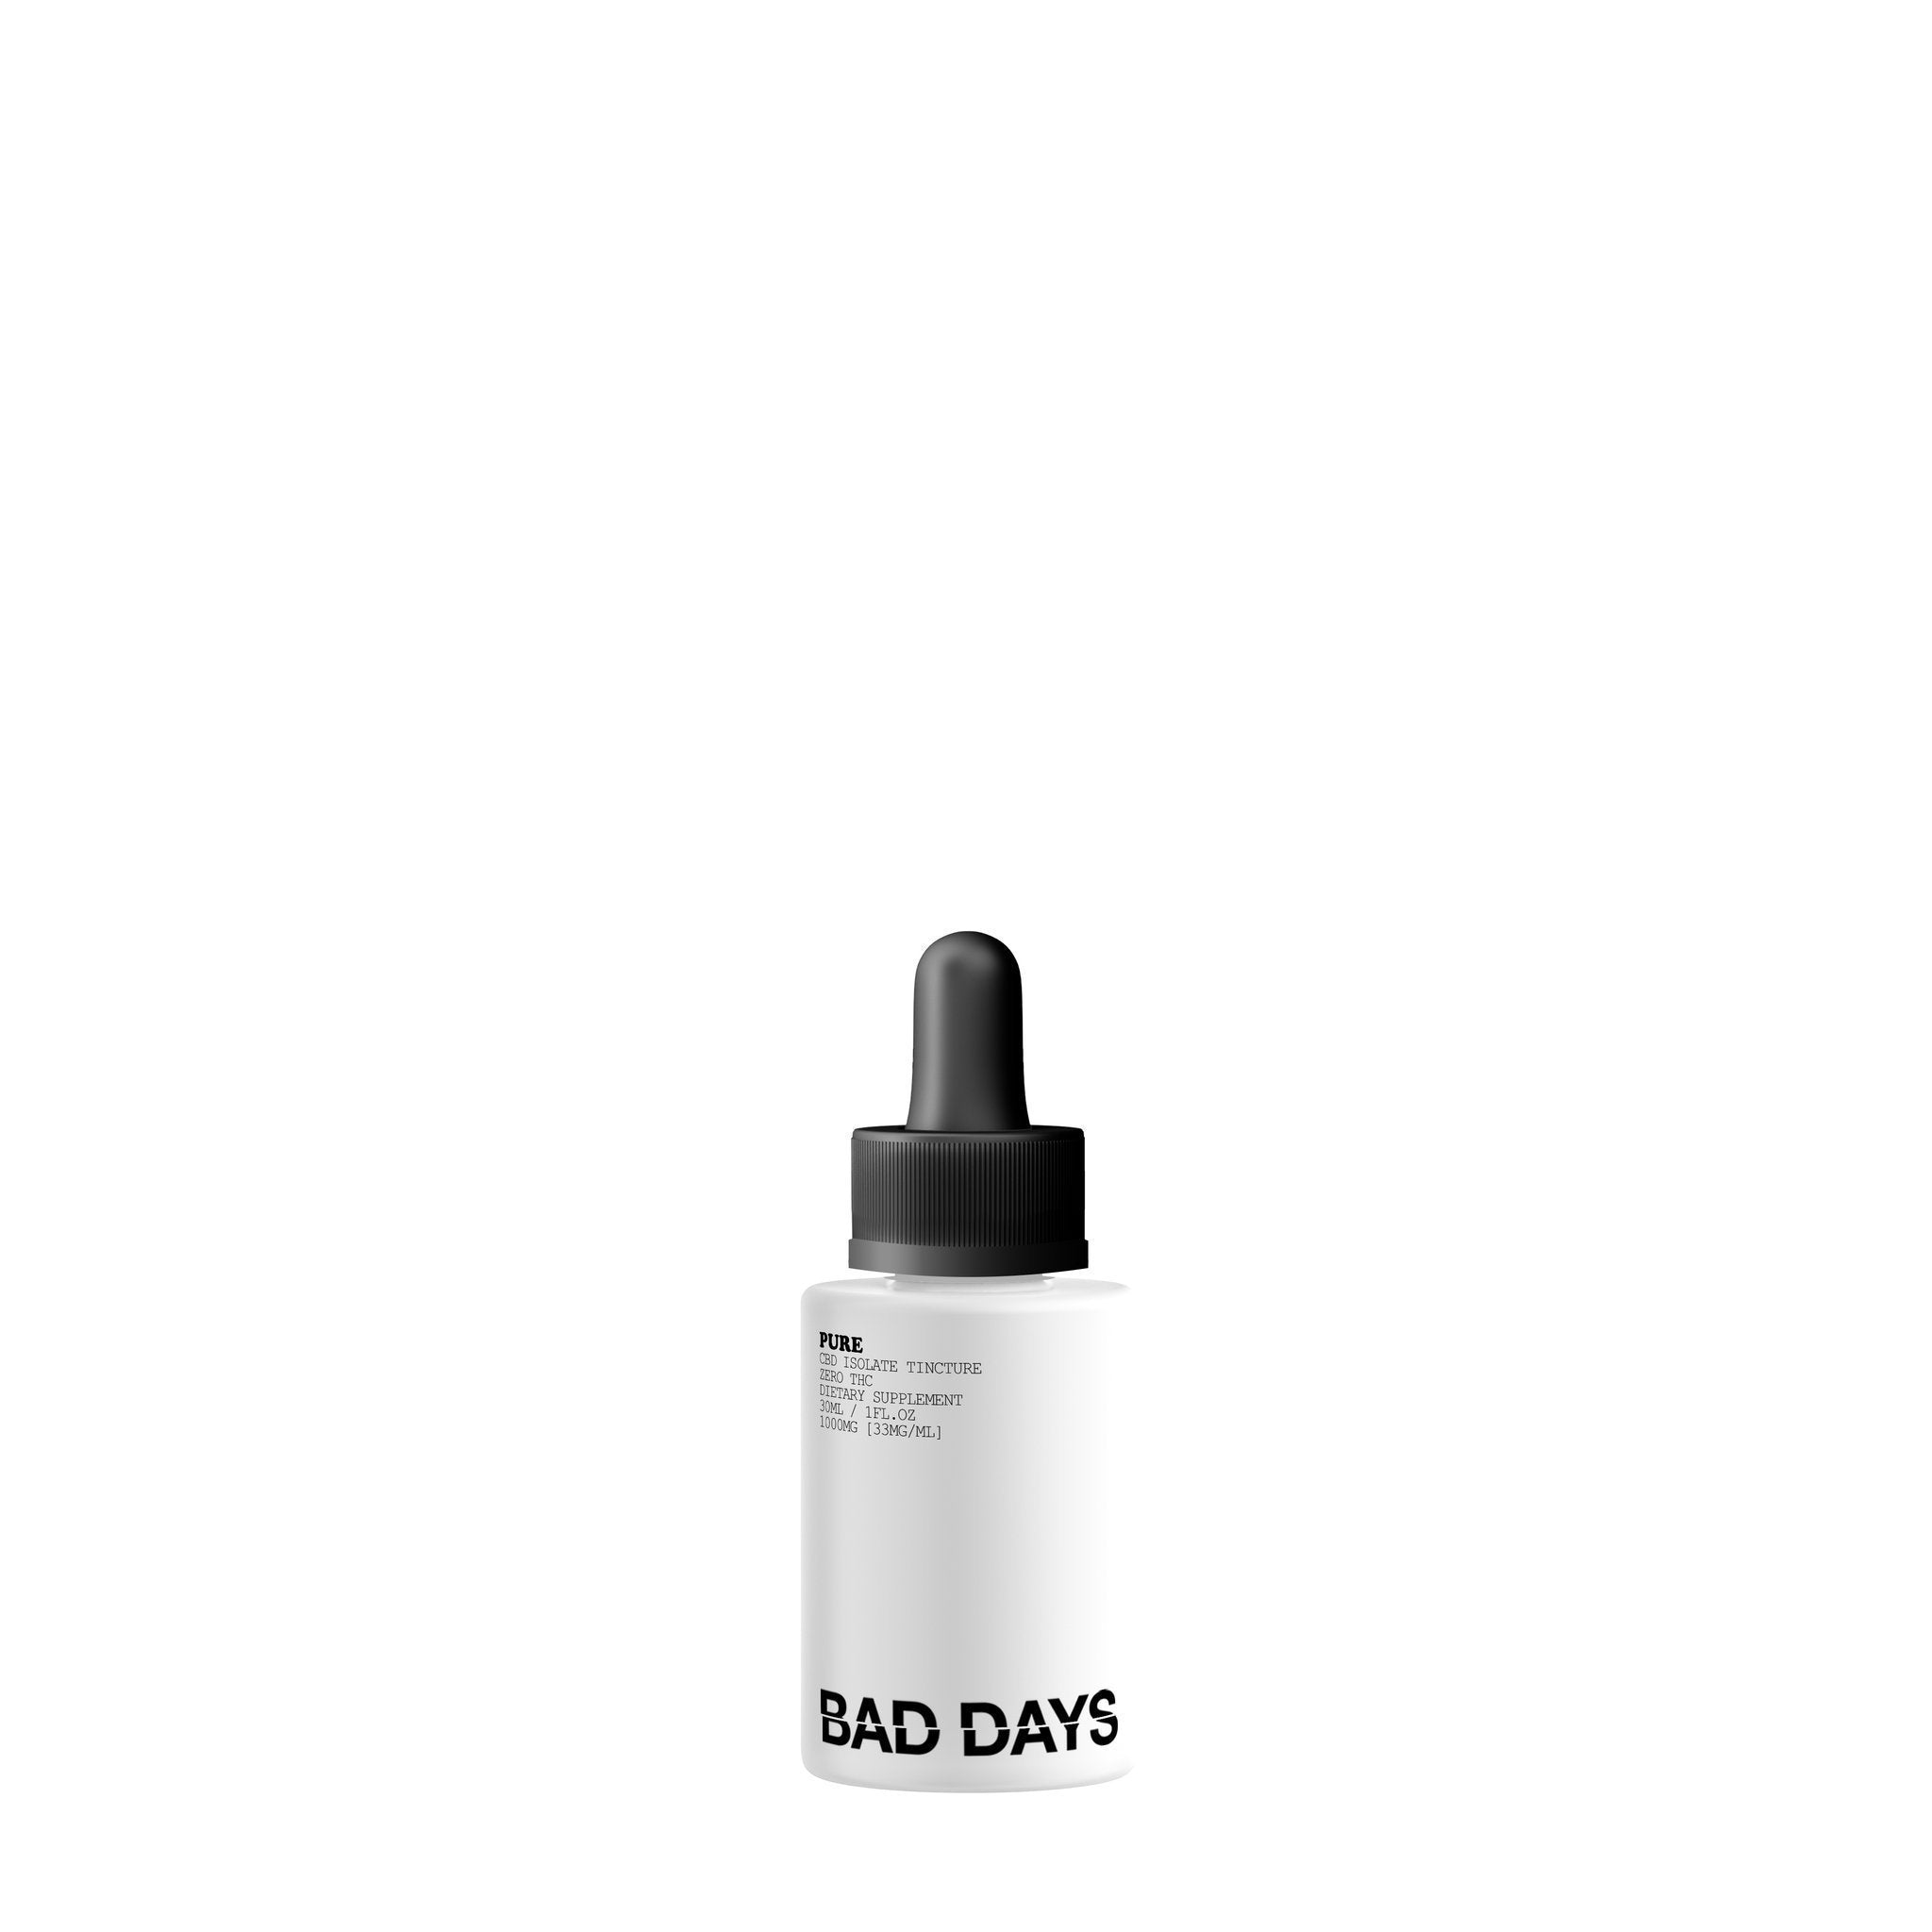 Bad Days - PURE - Tincture